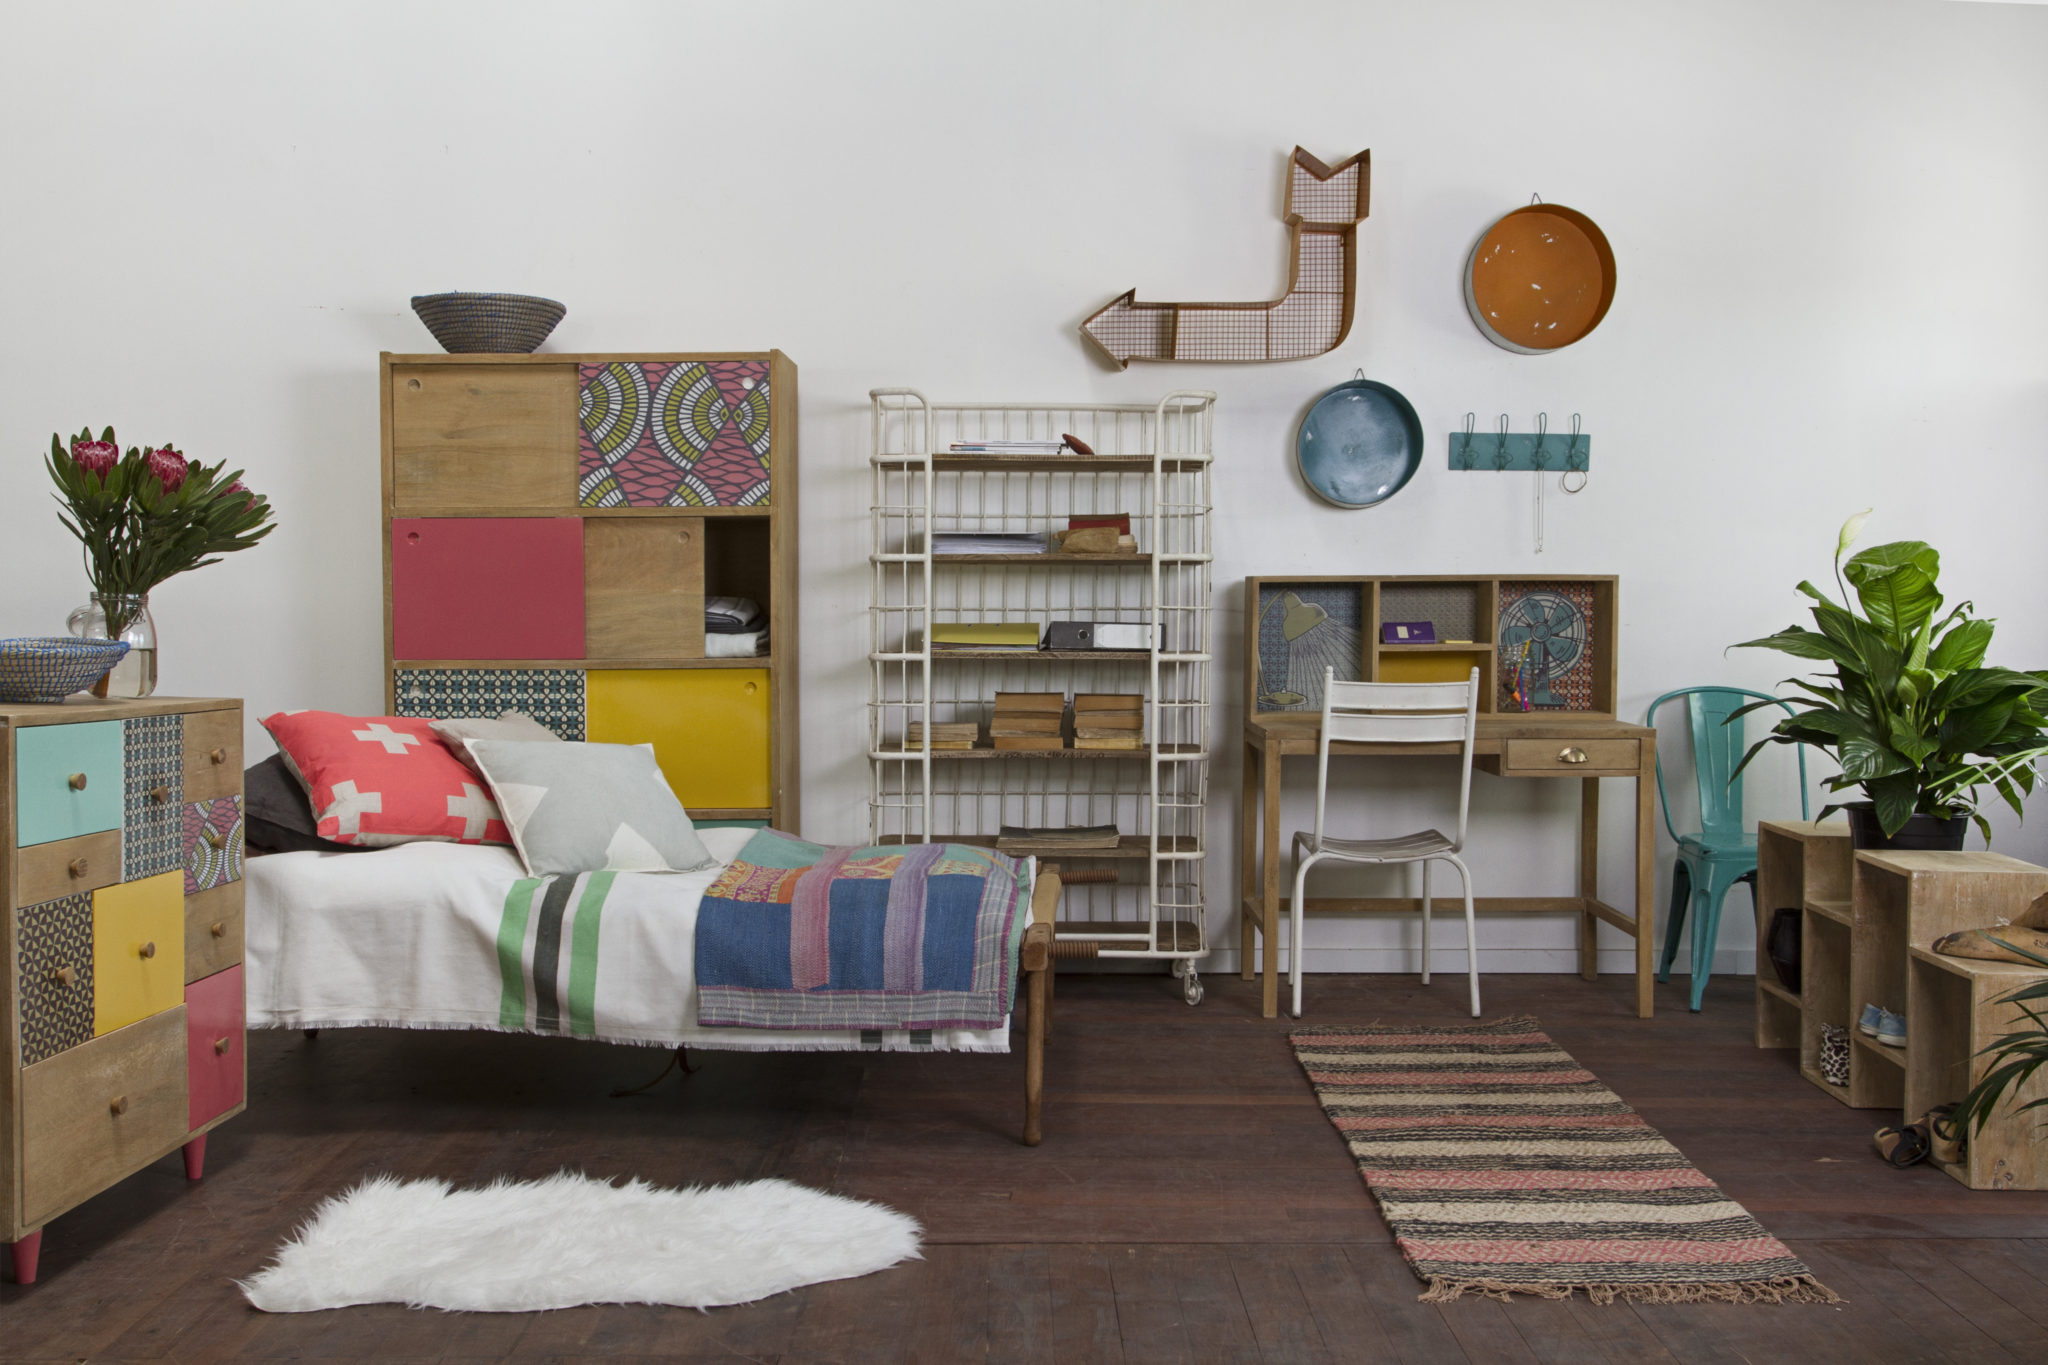 ... Sydney It Presented Us With An Opportunity To Take A Step Back And  Think About And Develop A New Concept,u201d She Explains. U201cHere Loft Furniture  And Other ...